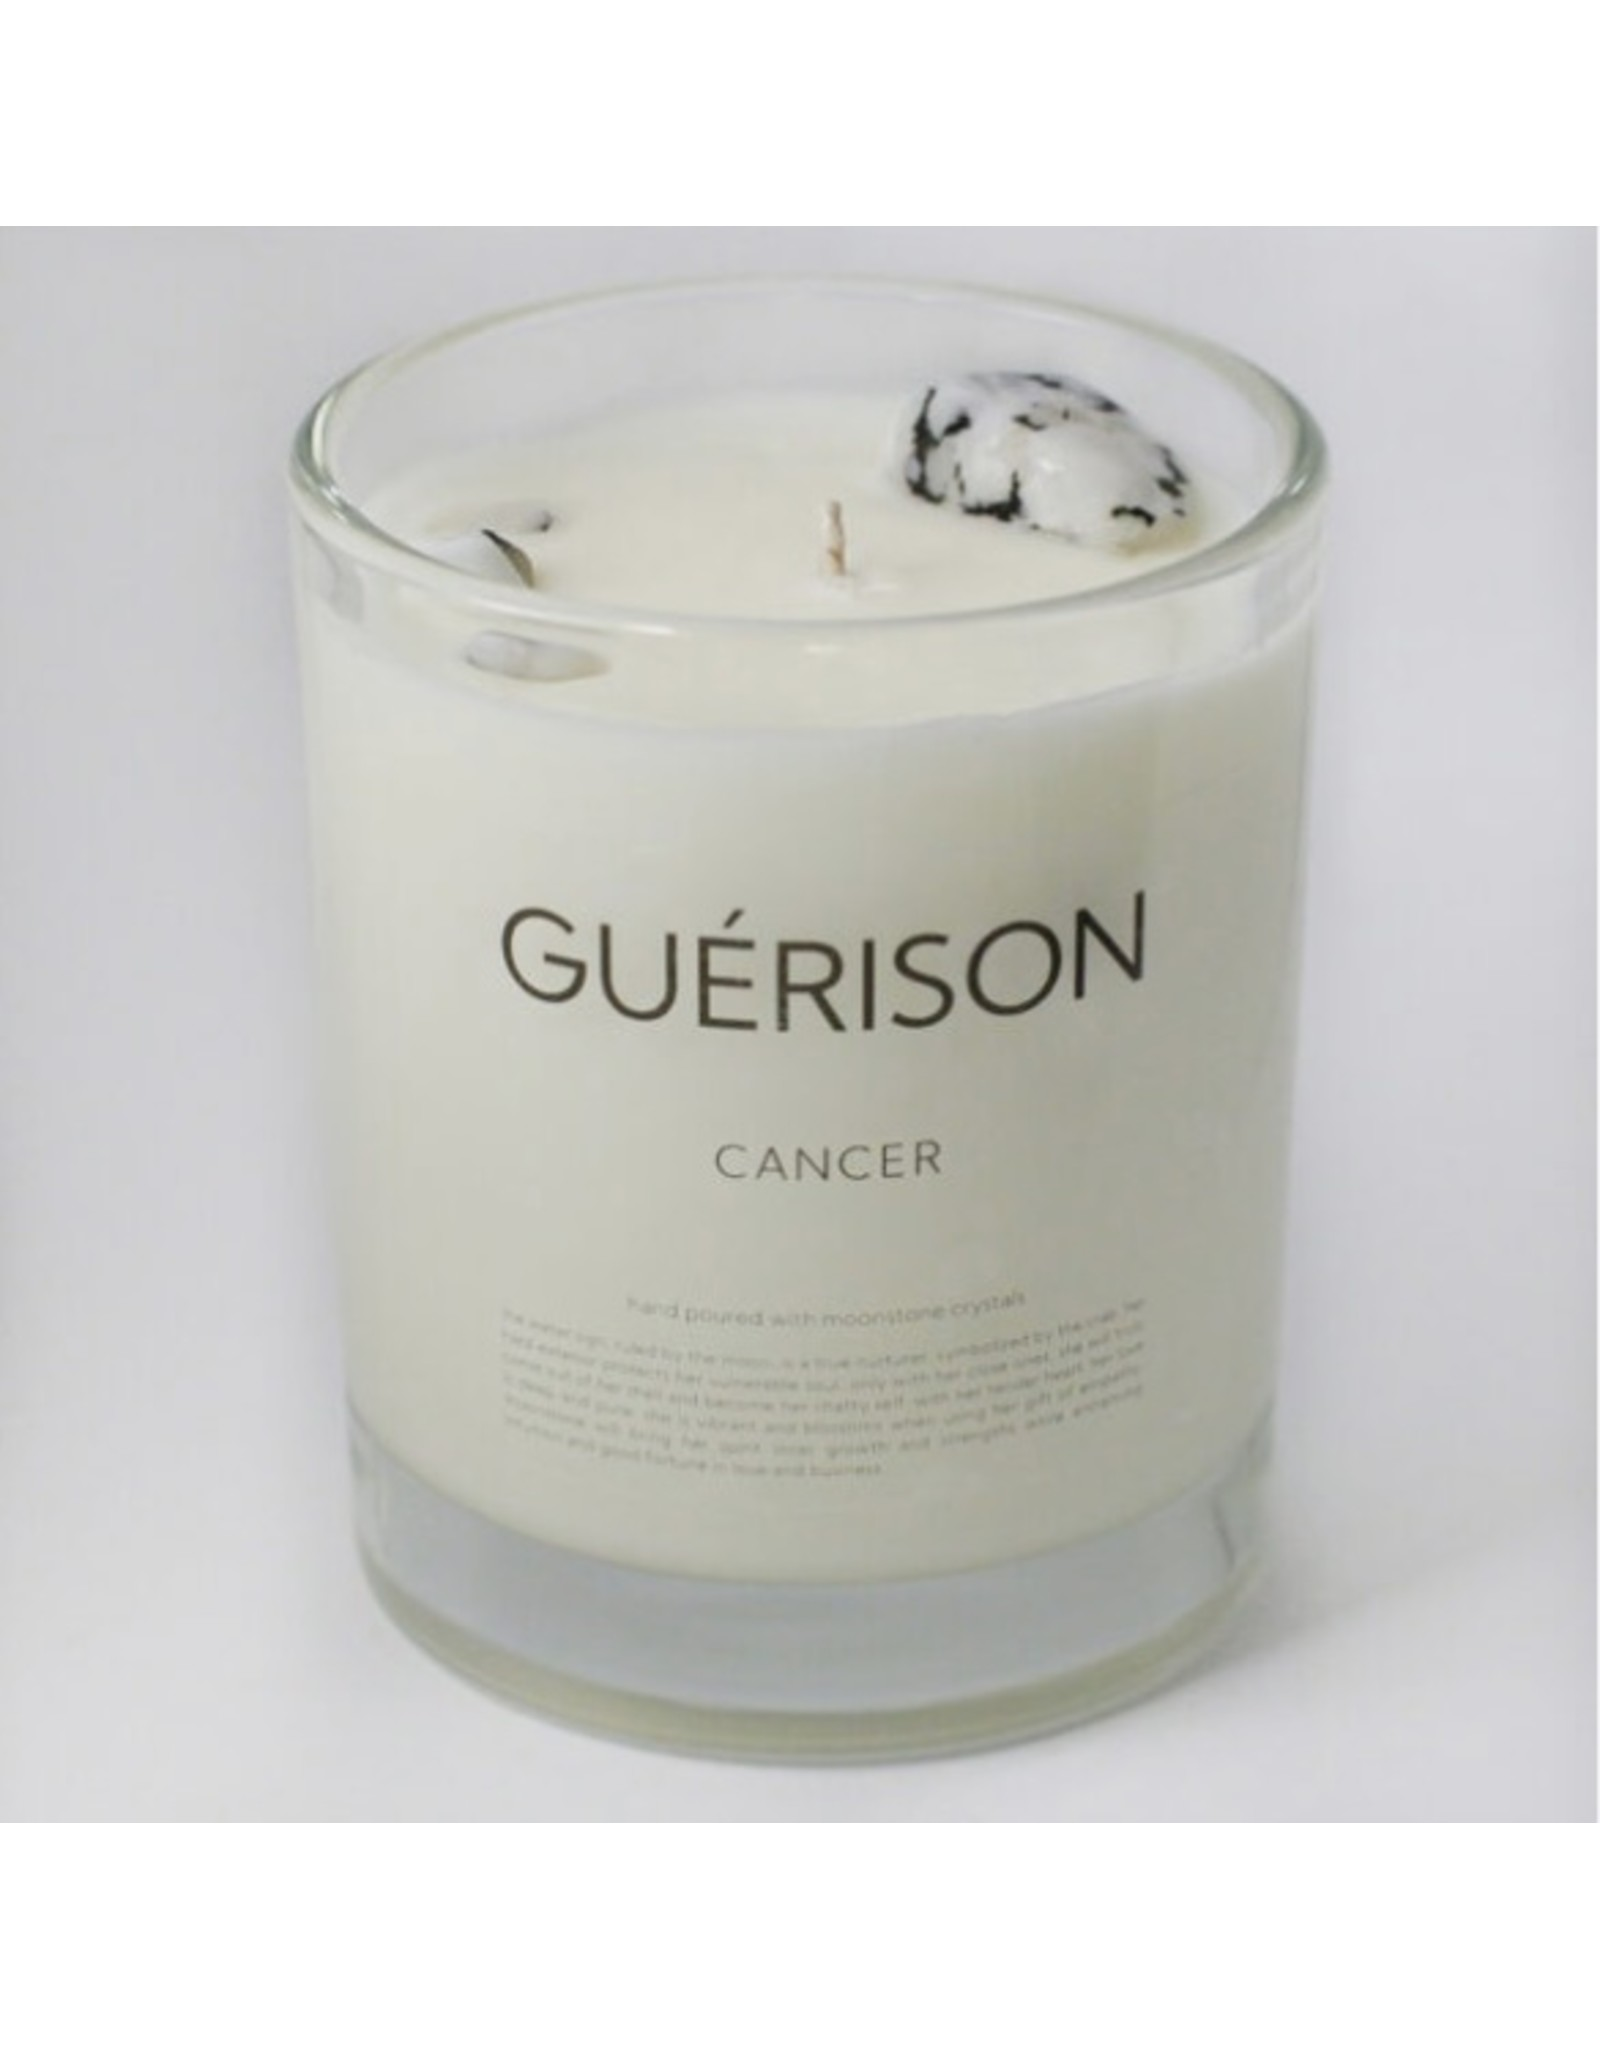 Guérison Cancer Candle, 220g